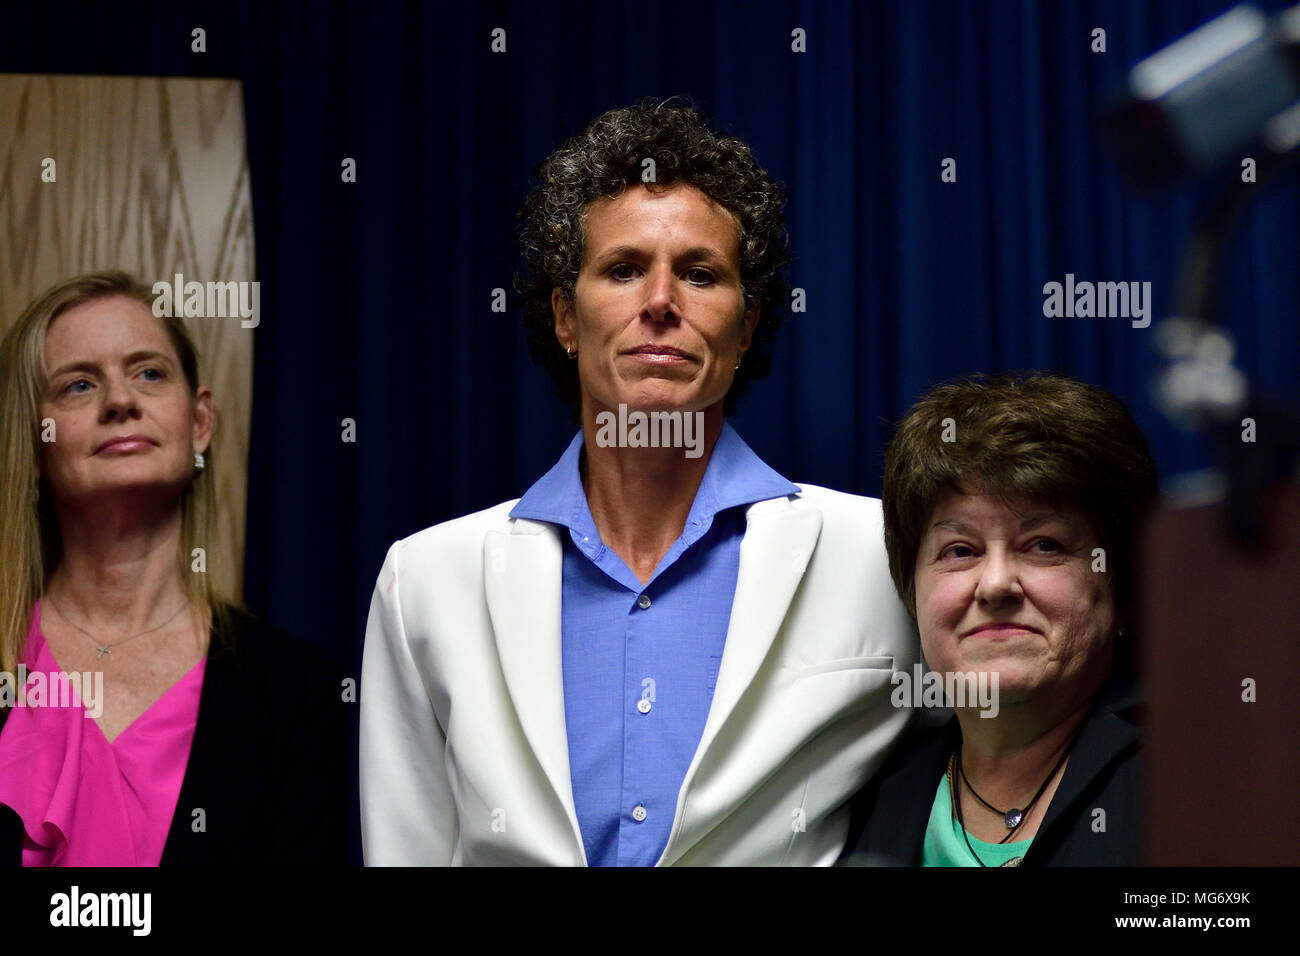 Norristown, USA. 26th Apr, 2018. Accuser Andrea Constand attends a press conference of the Prosecution after the guilty verdict in the Bill Cosby sexual assault trial, at Montgomery County Court House in Norristown, PA, USA, on April 26, 2018. Credit: Bastiaan Slabbers/Alamy Live News - Stock Image